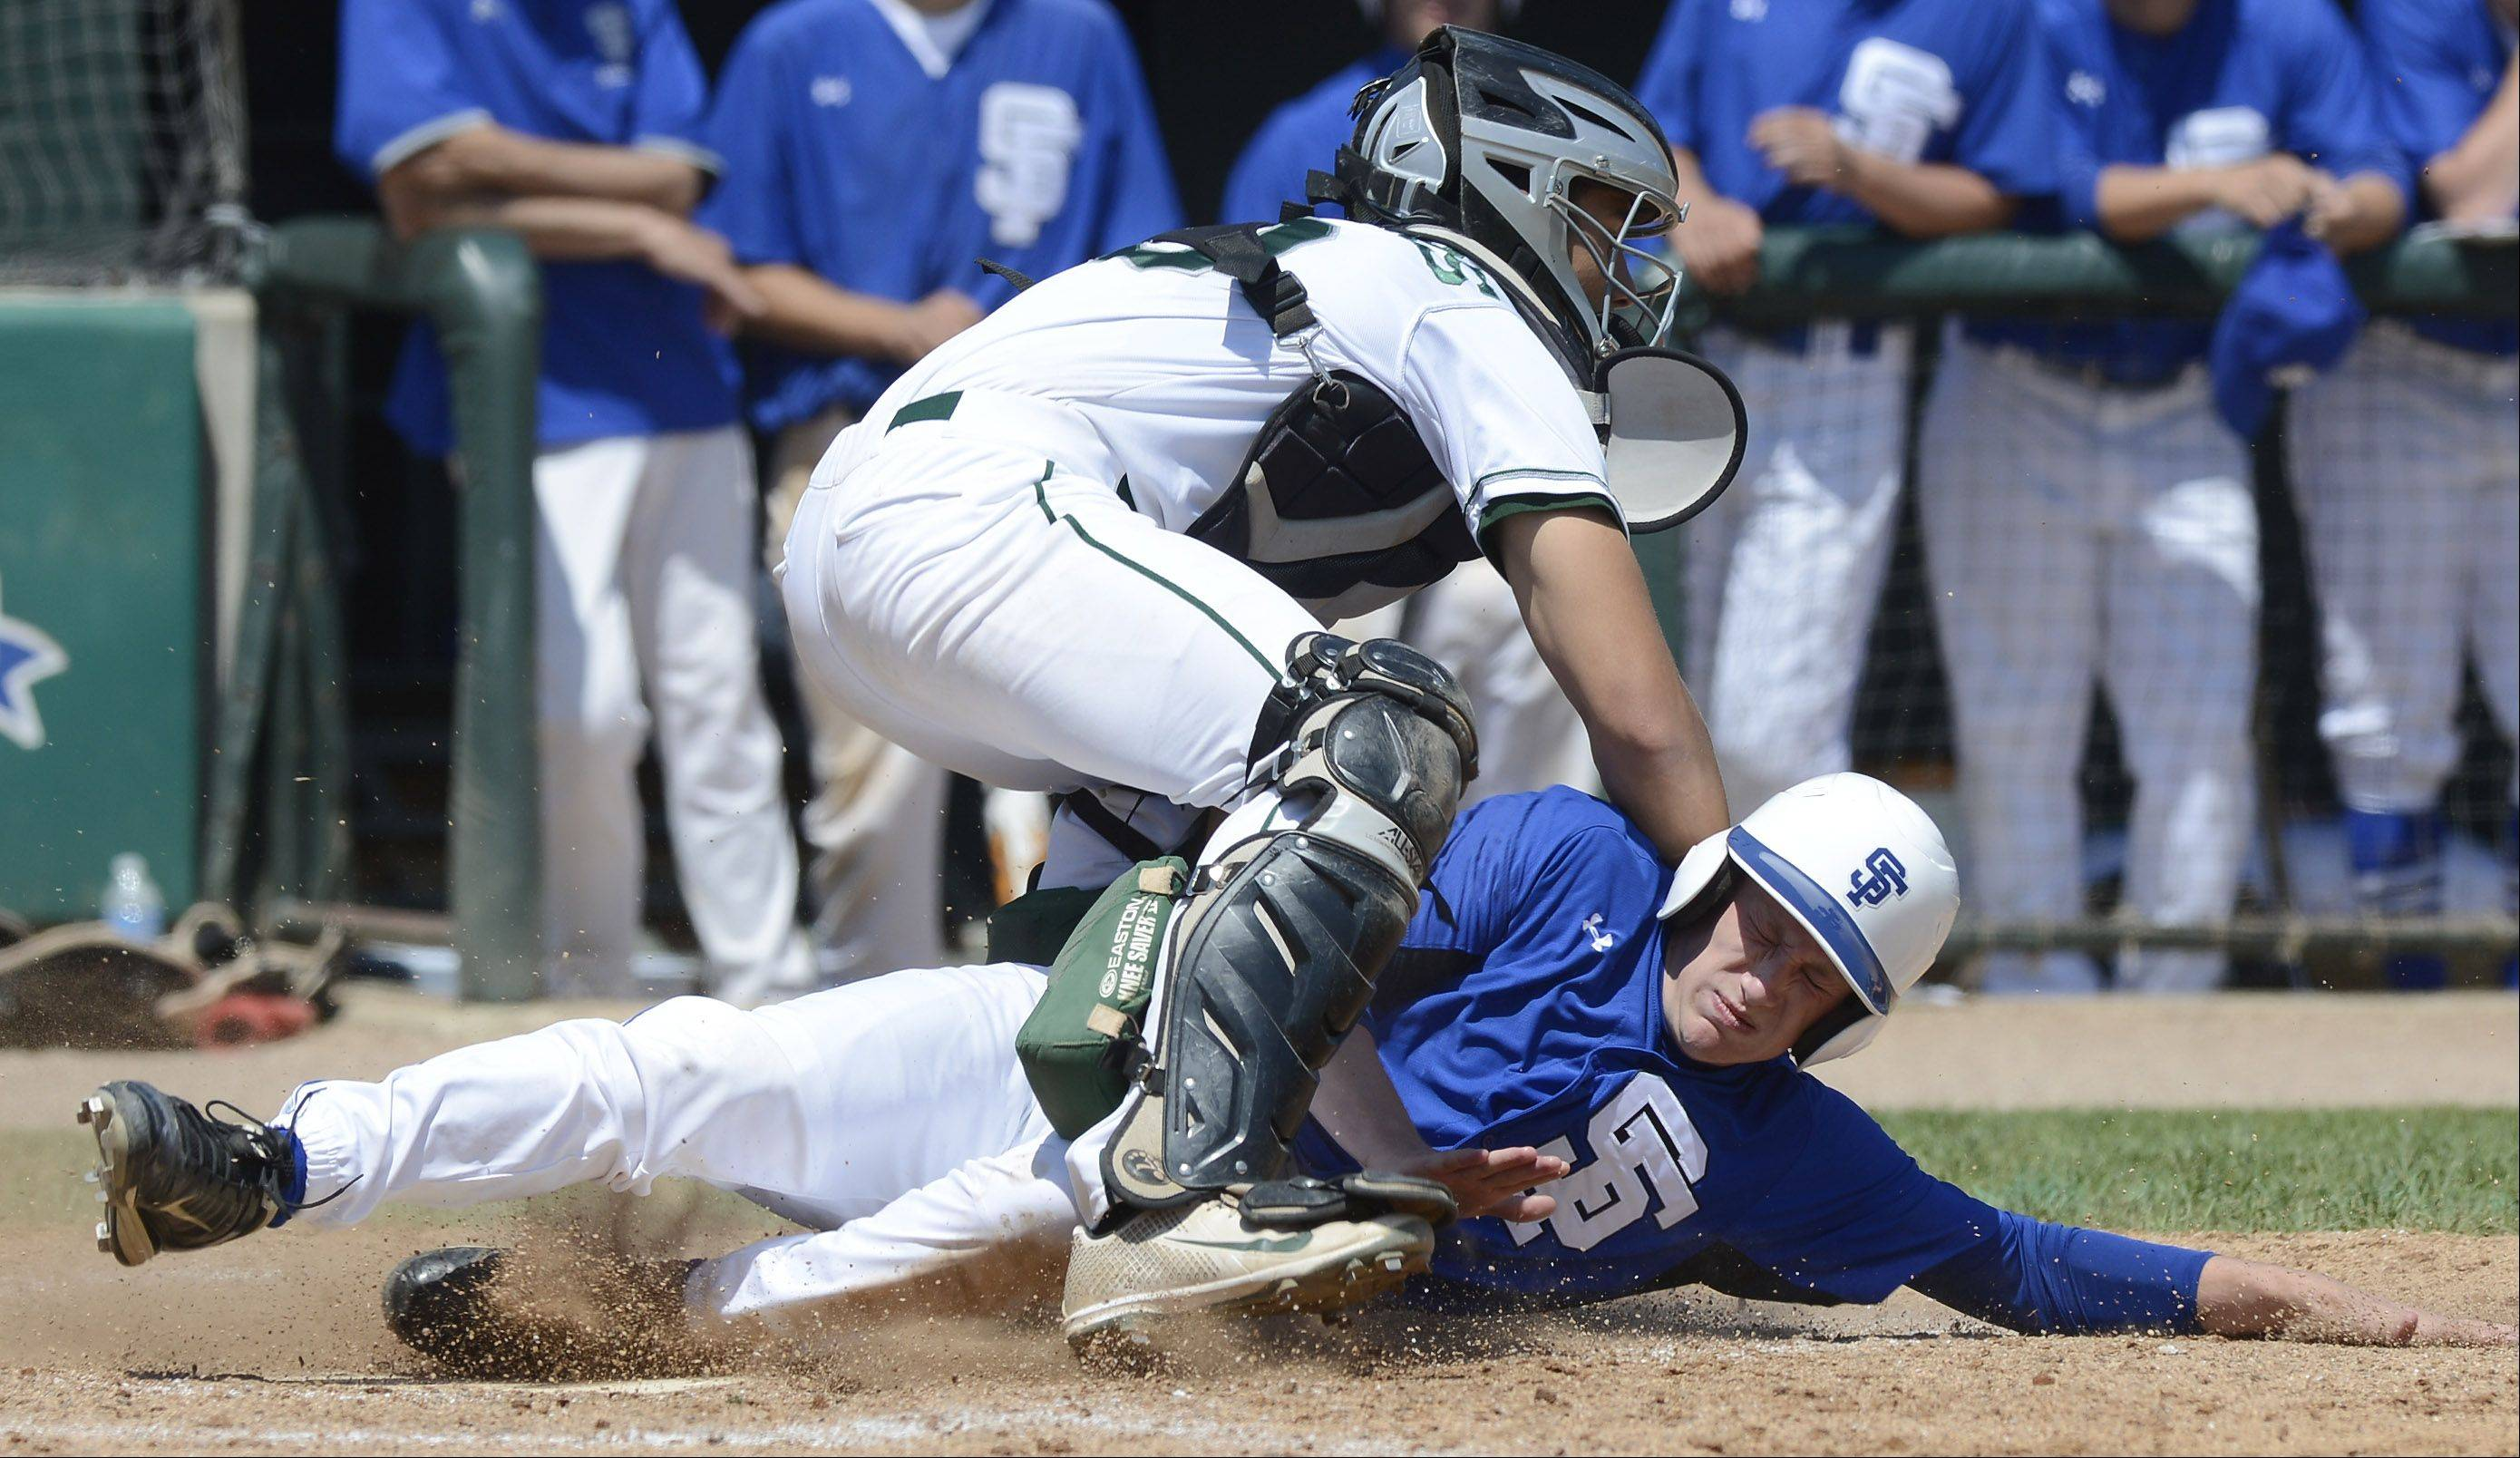 Images: St. Francis vs.Grayslake Central State Semifinal Baseball